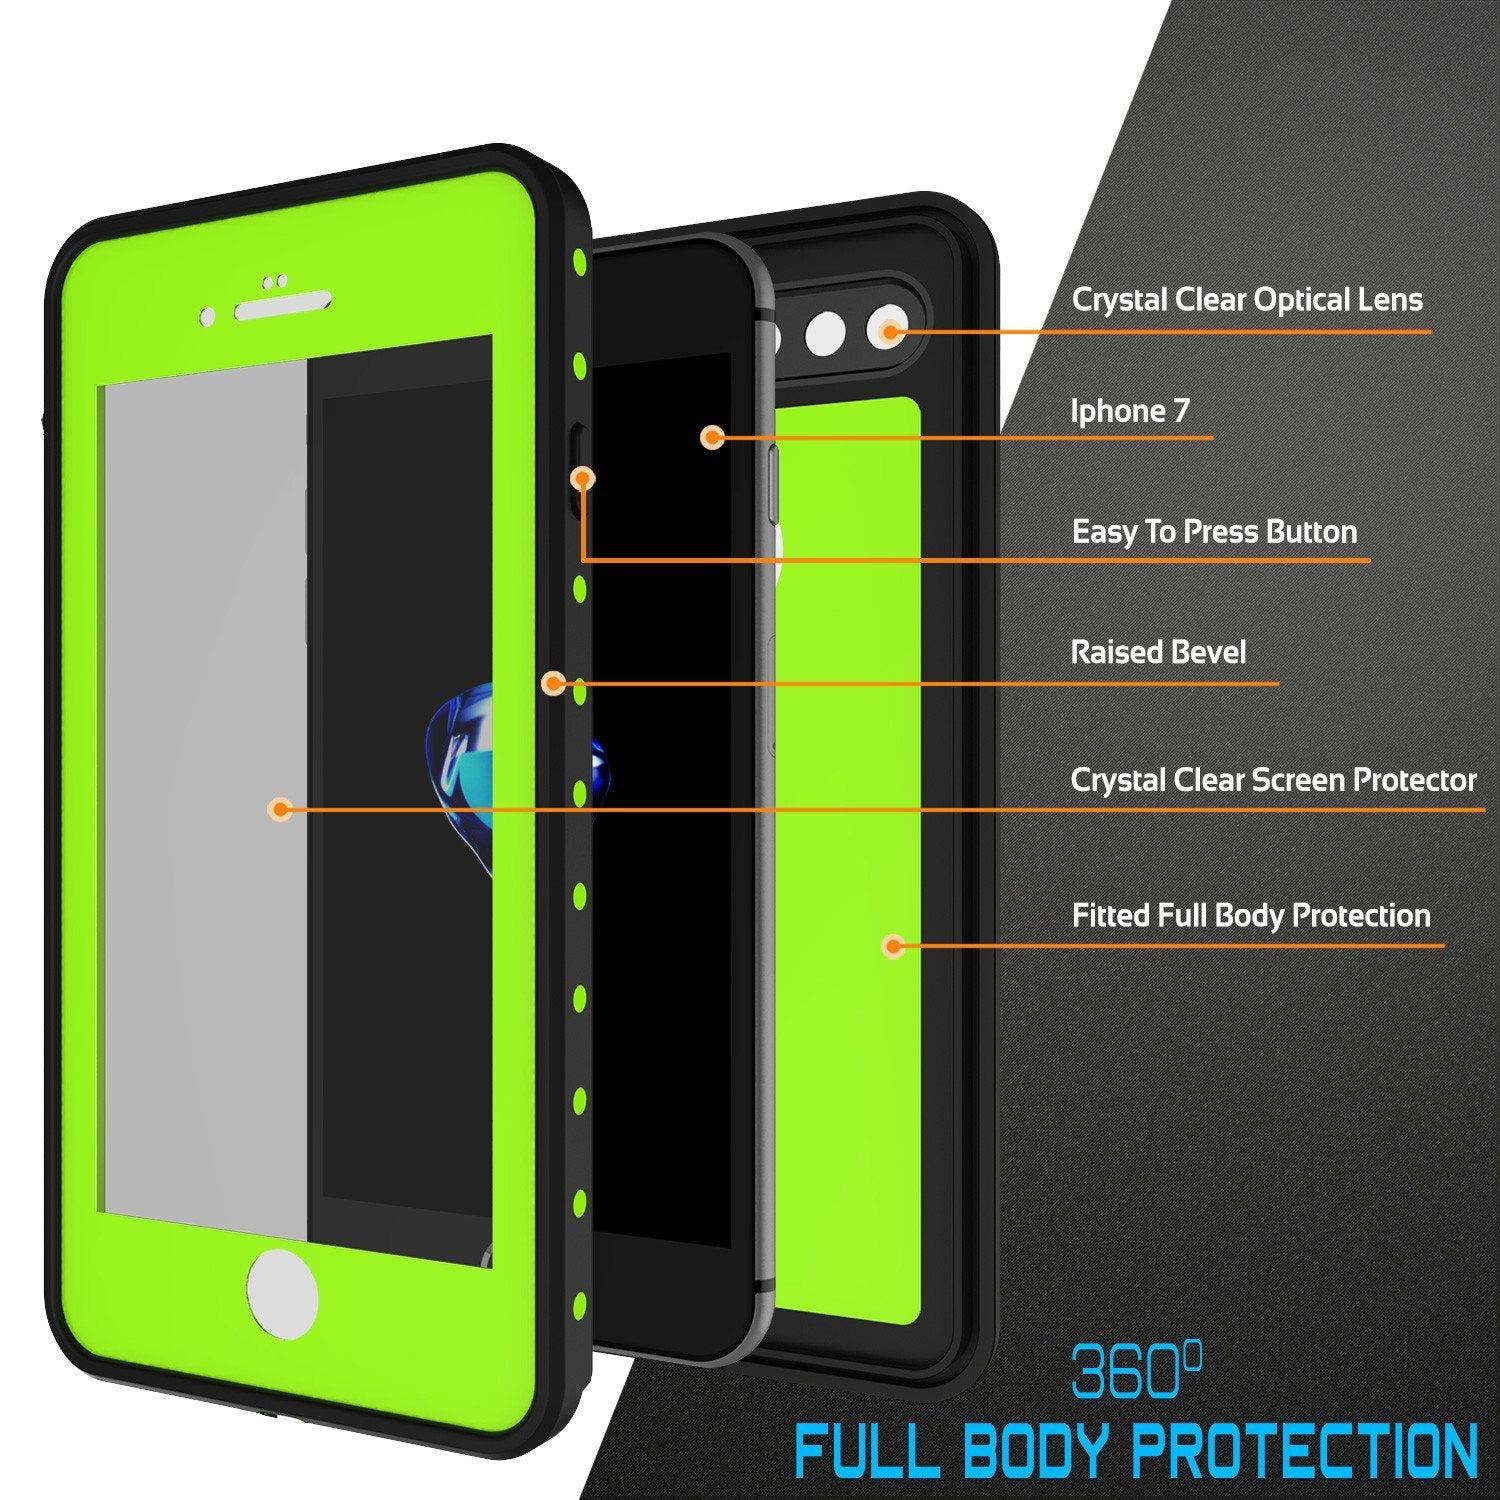 iPhone 8+ Plus Waterproof IP68 Case, Punkcase [Light Green] [StudStar Series] [Slim Fit] [Dirtproof] - PunkCase NZ